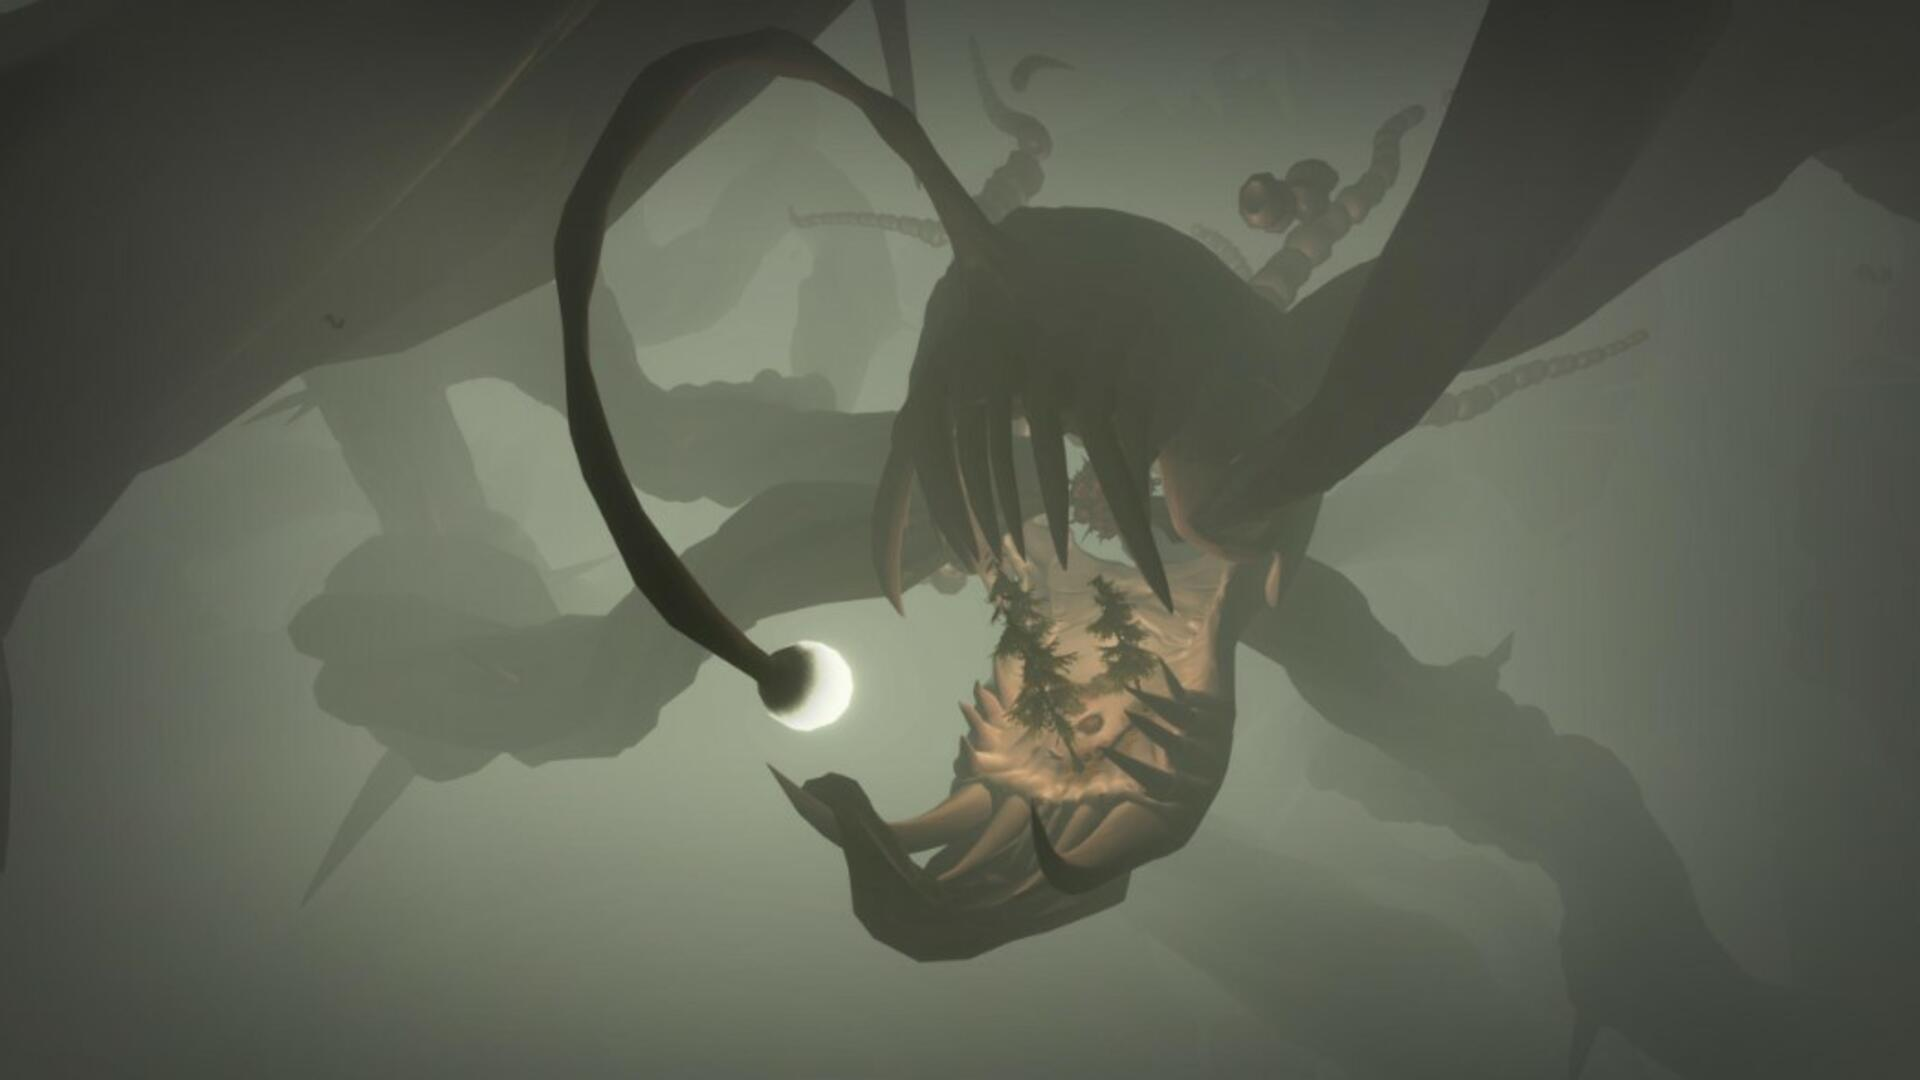 Outer Wilds Dark Bramble: How to Get Past the Angler Fish and Find Feldspar